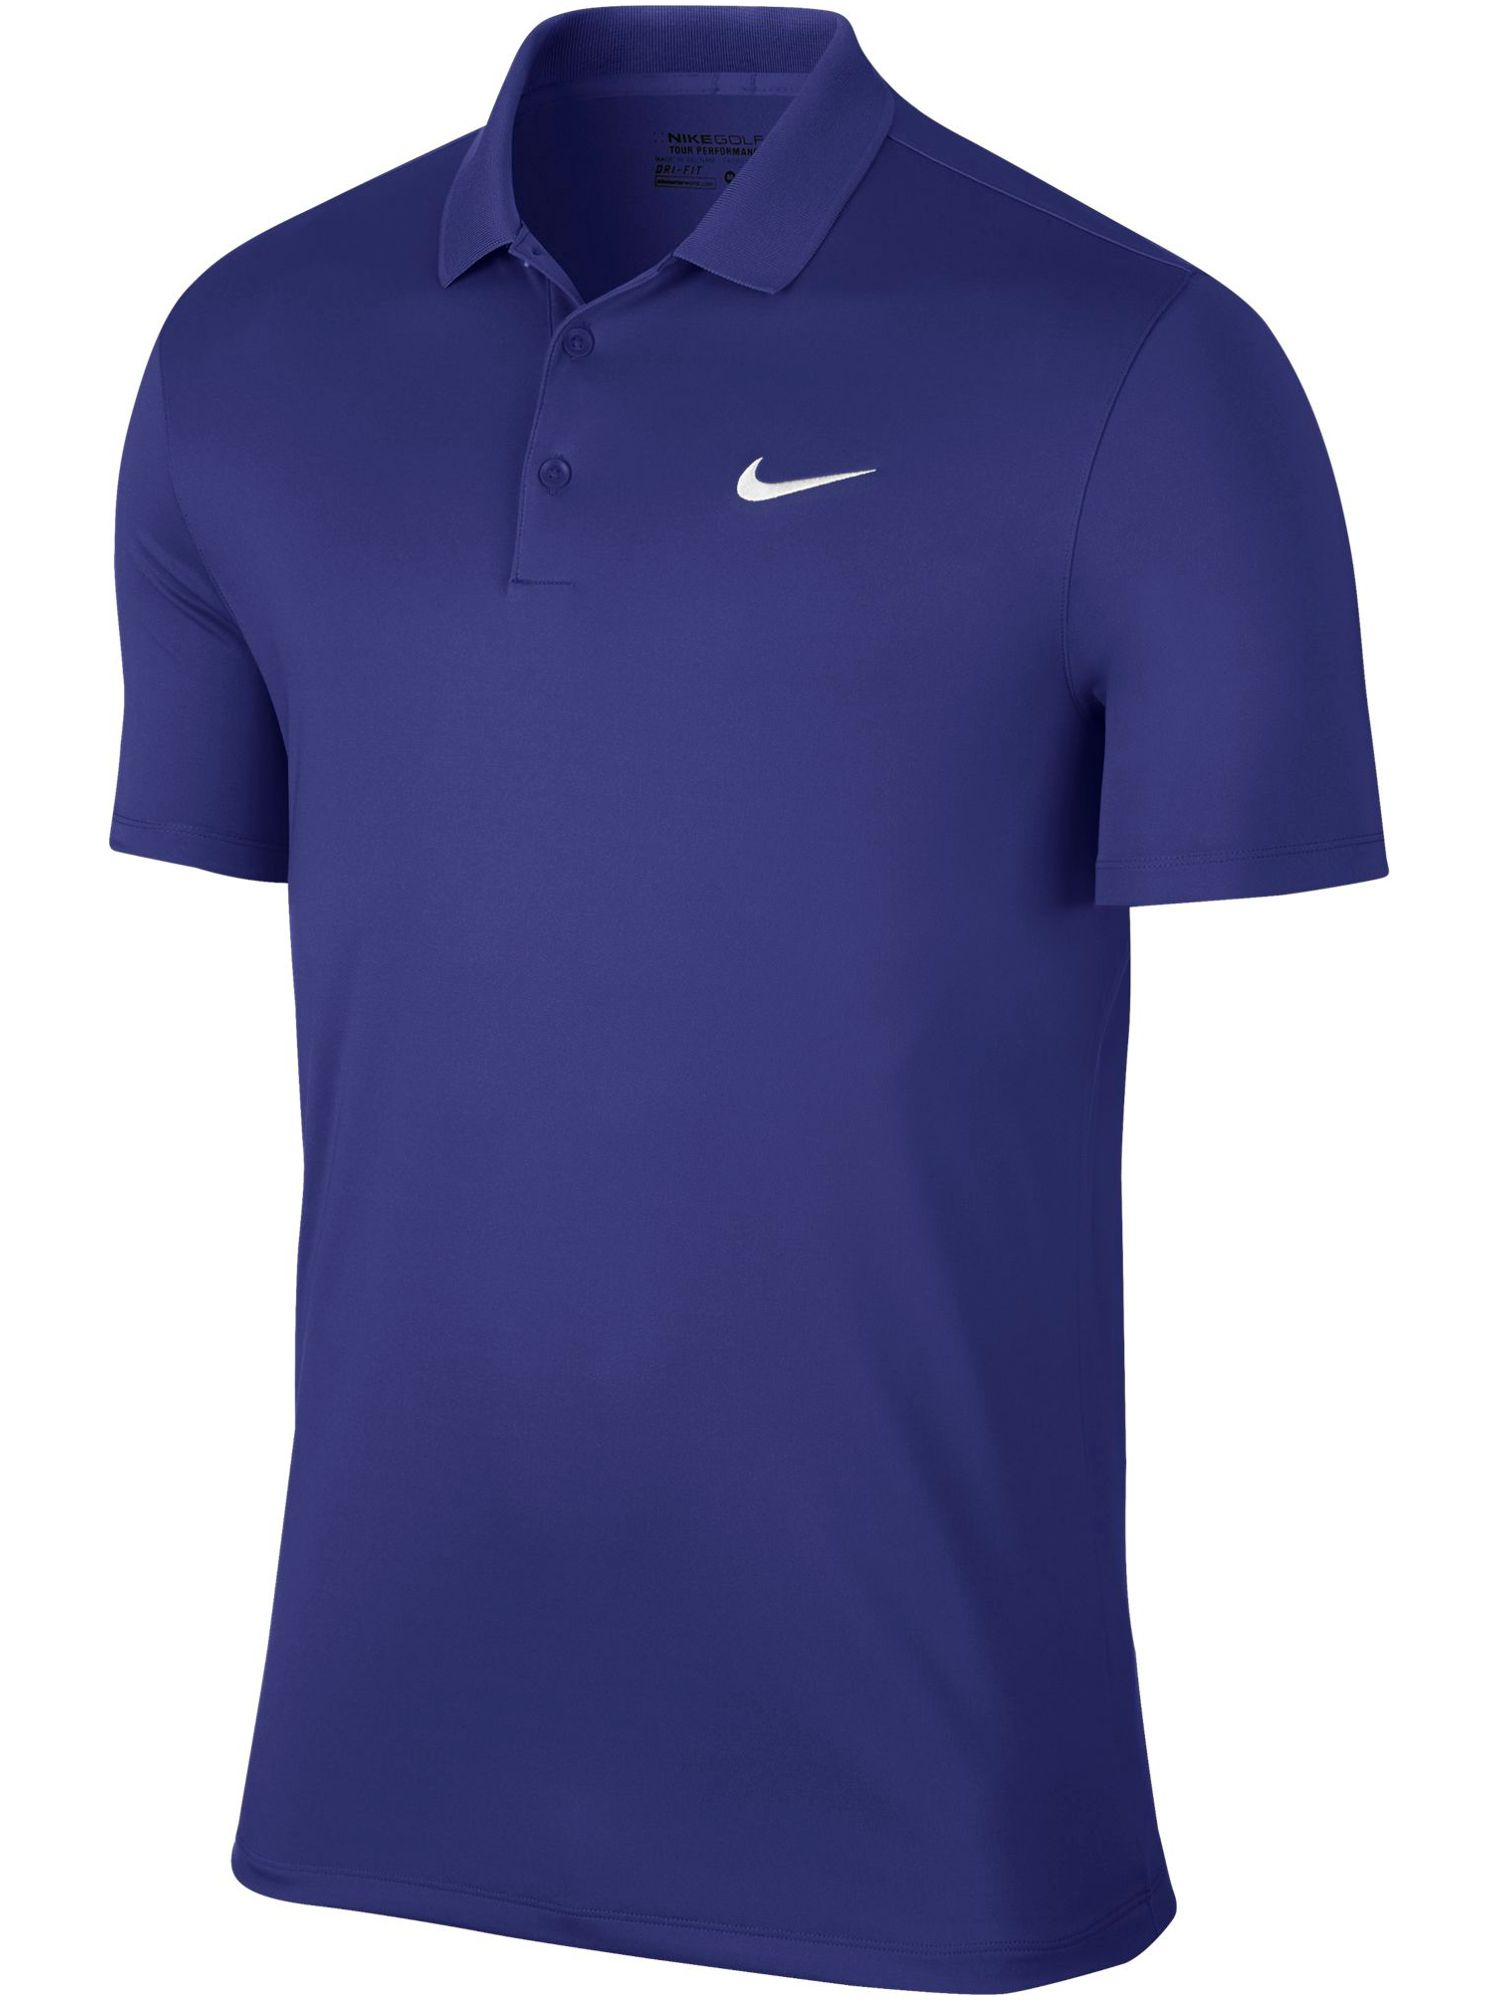 Men's Nike Golf Victory Solid Polo, Mid Blue